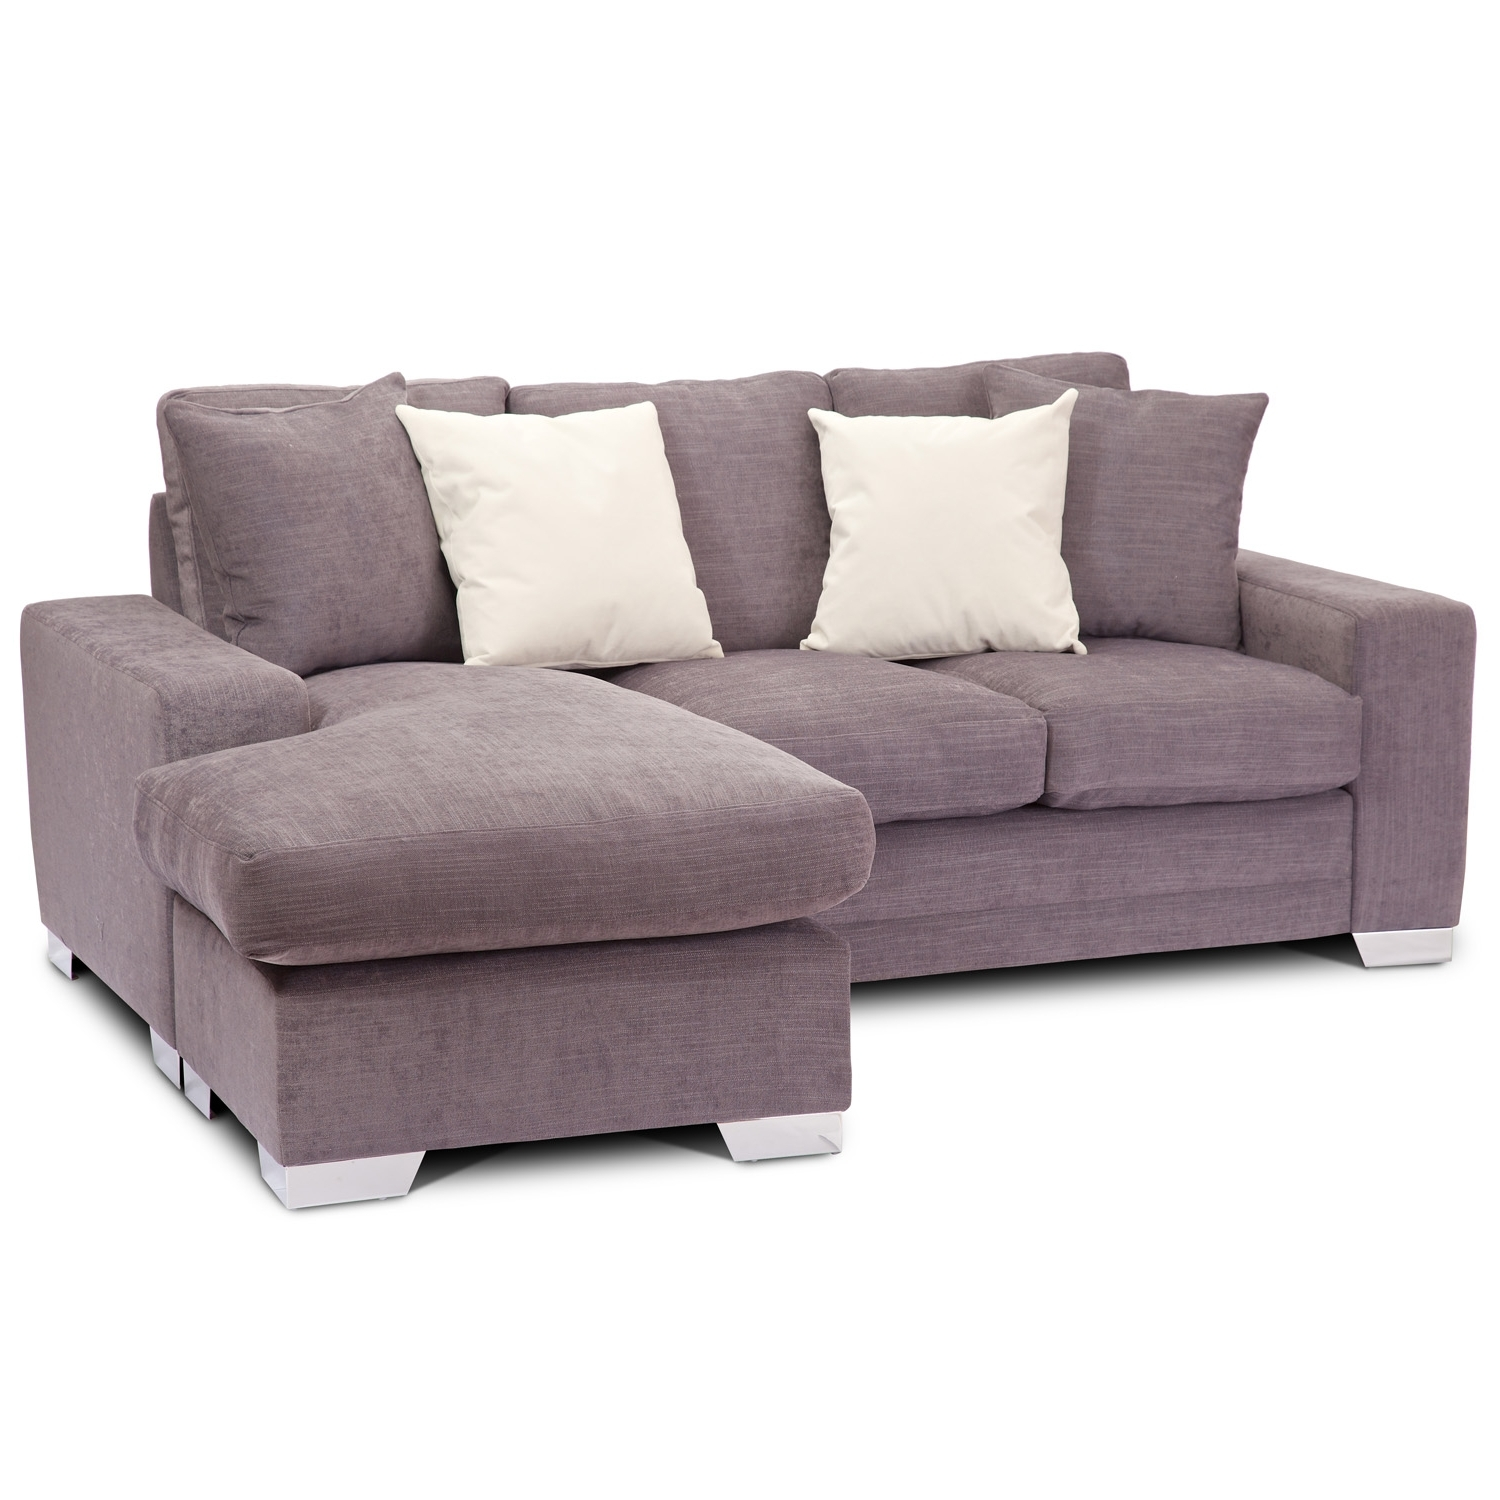 Famous Chaise Lounge Sofa Beds Regarding Sofas: Classic Meets Contemporary Chaise Sofa Bed For Ideal Living (View 9 of 15)